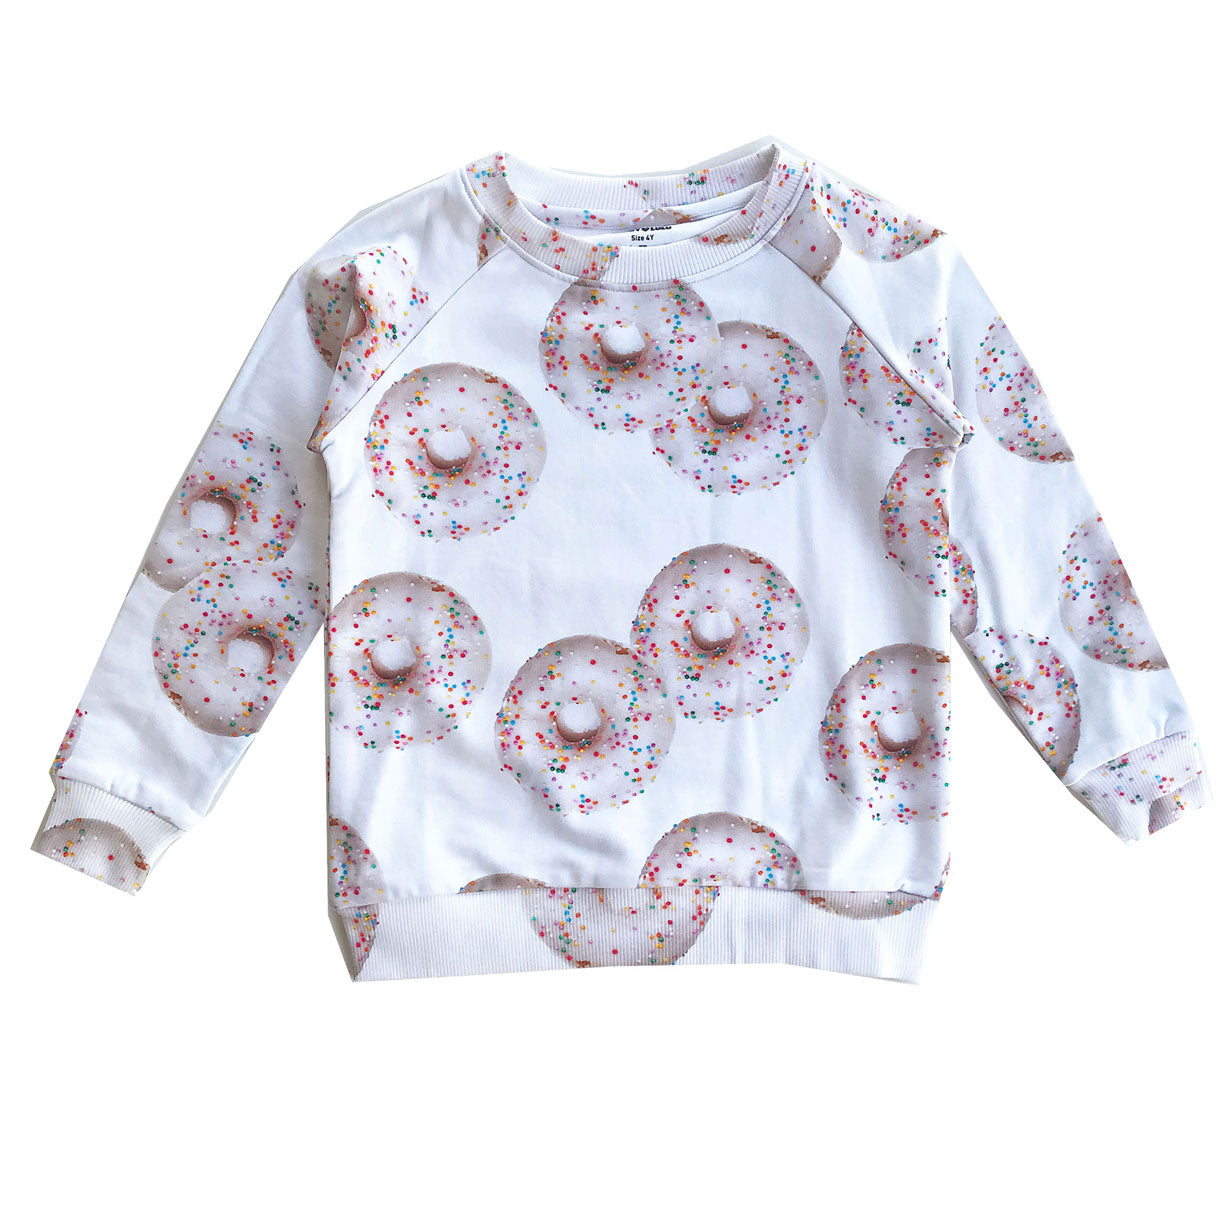 Romey Loves Lulu Donuts Sweatshirt